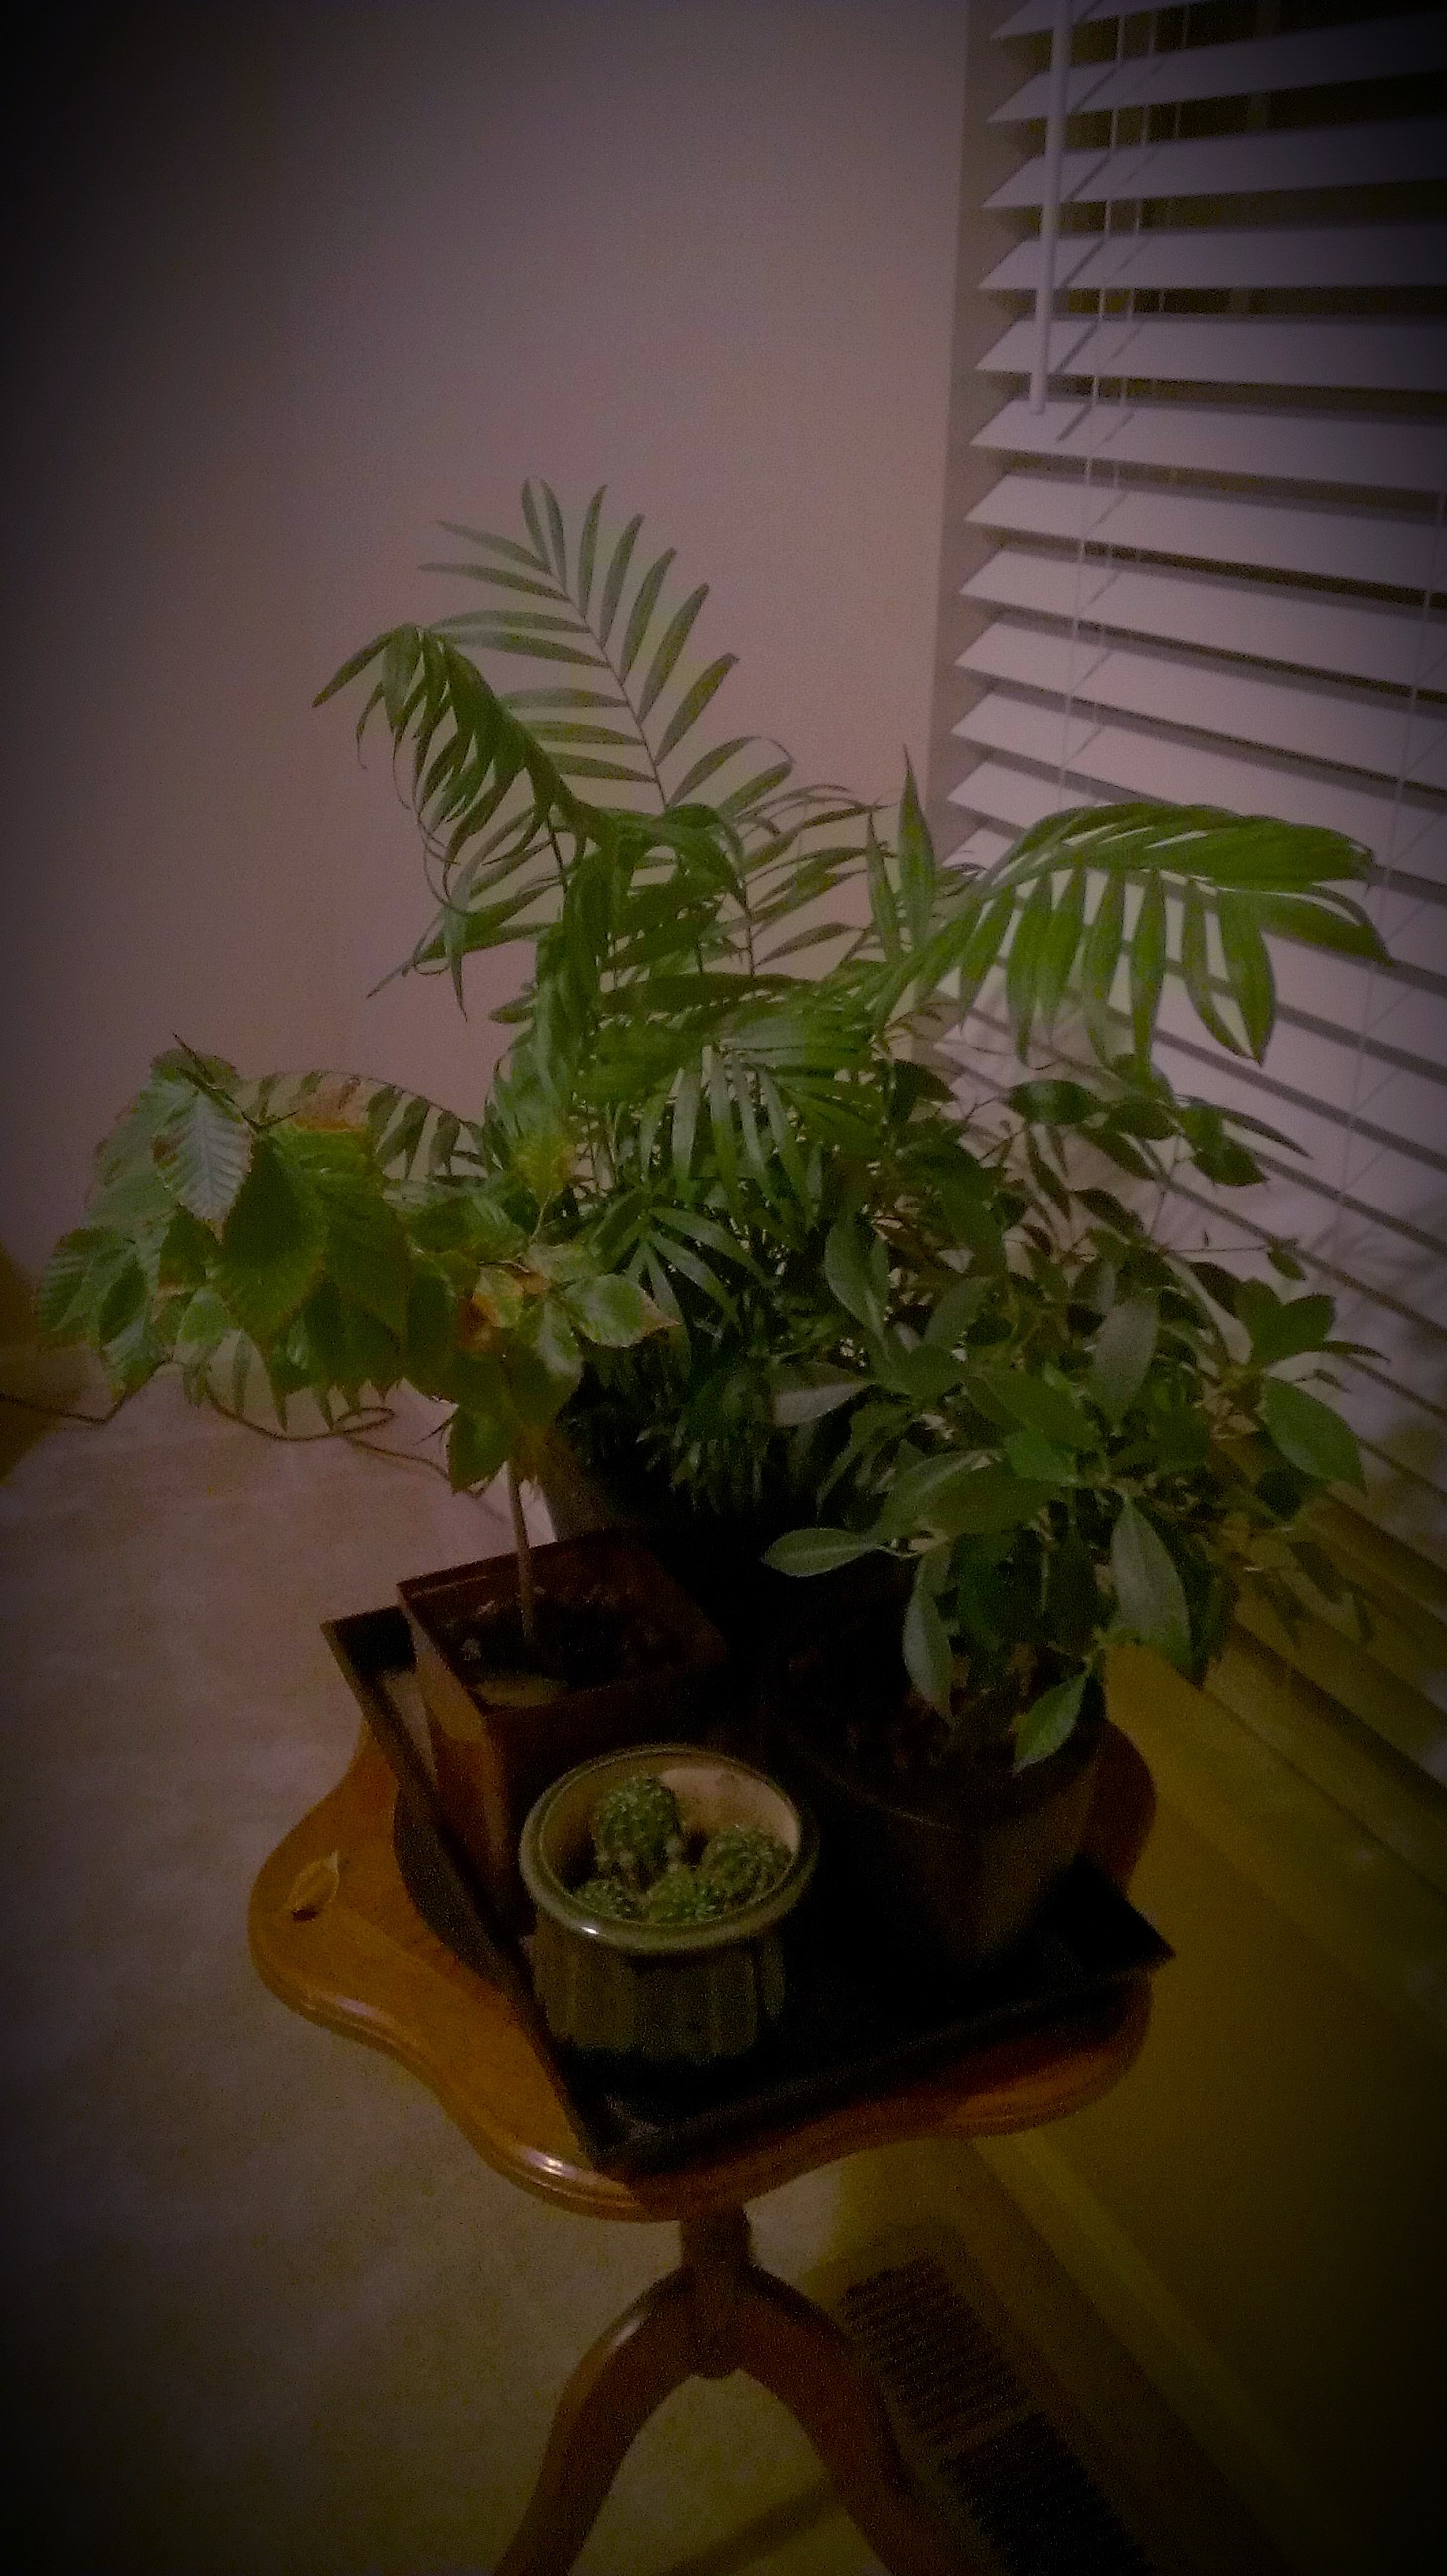 My plants are Cactus, Small Beech tree (left), Bella Palm (Back), and a Ficus tree (right).